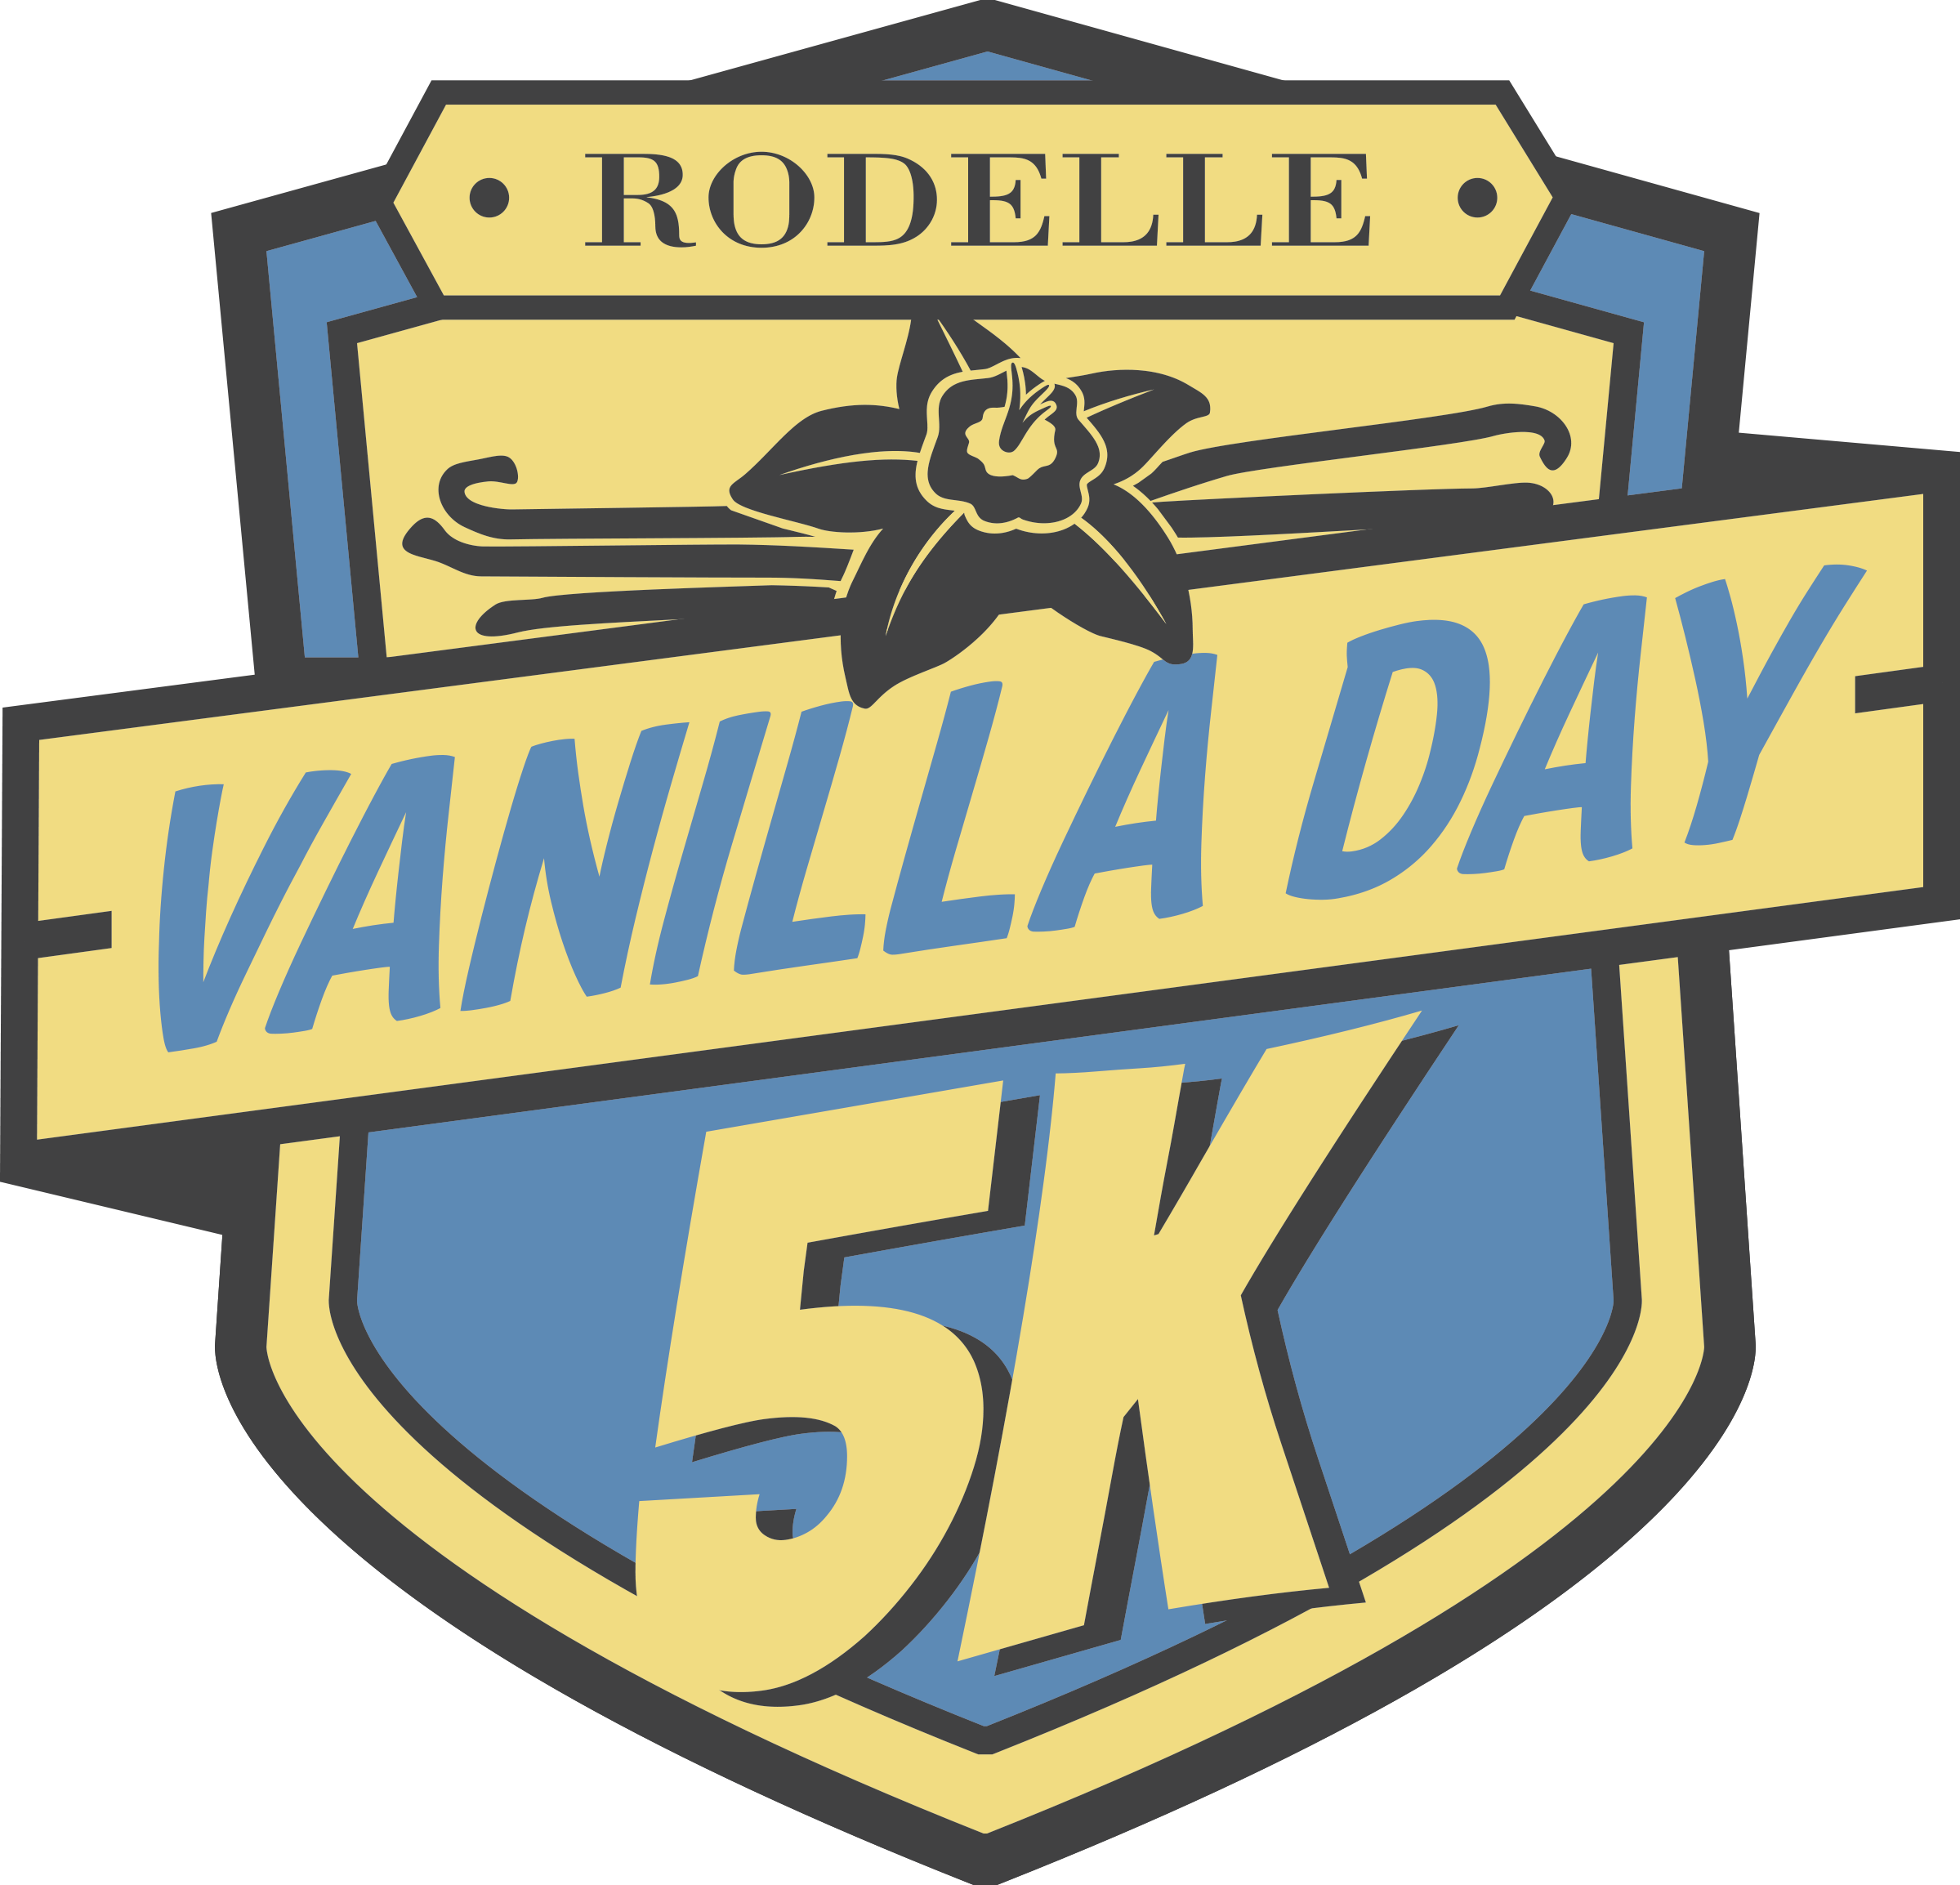 Couch clipart couch to 5k. Rodelle vanilla day k